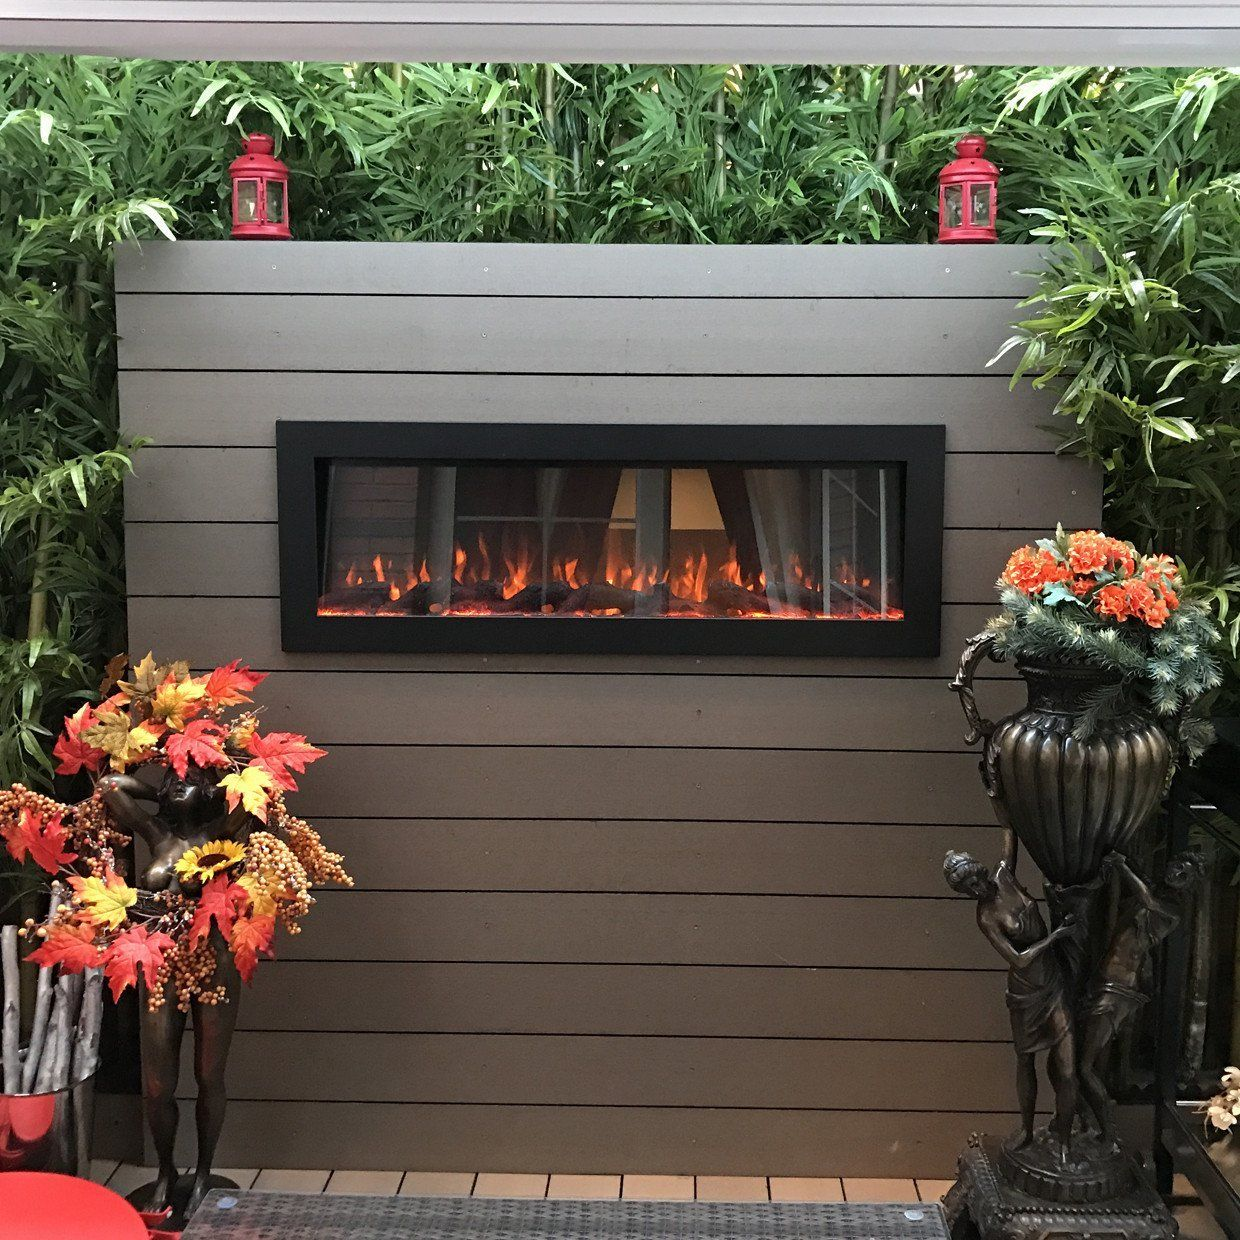 Sideline Outdoor Indoor 80017 50 Recessed Wall Mounted Electric Fireplace No Heat Outdoor Fireplace Designs Wall Mount Electric Fireplace Fireplace Design